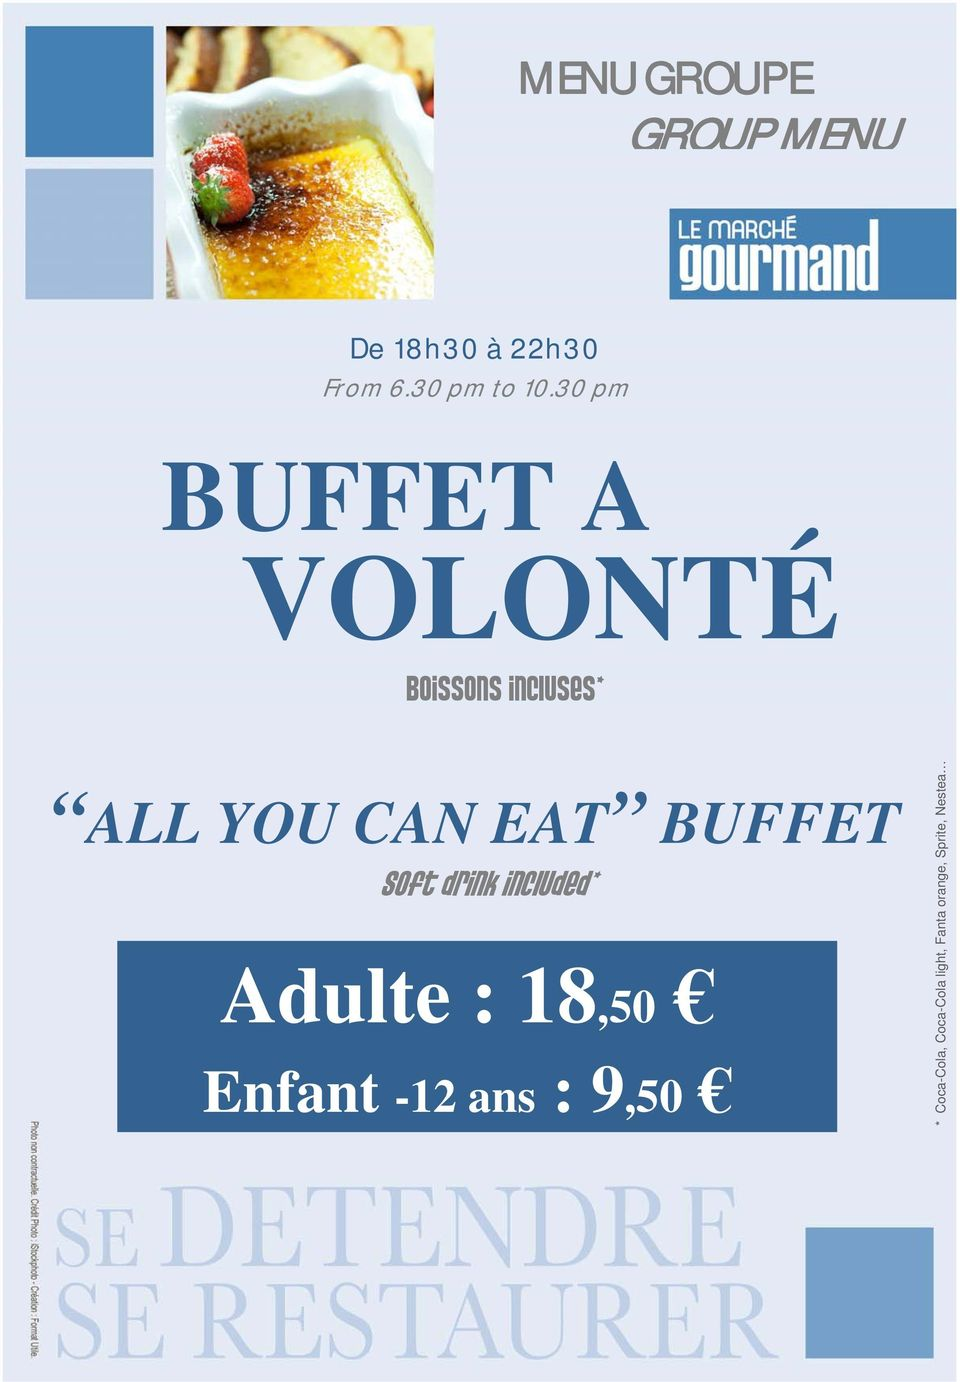 BUFFET Soft drink included* Adulte : 18,50 Enfant -12 ans :